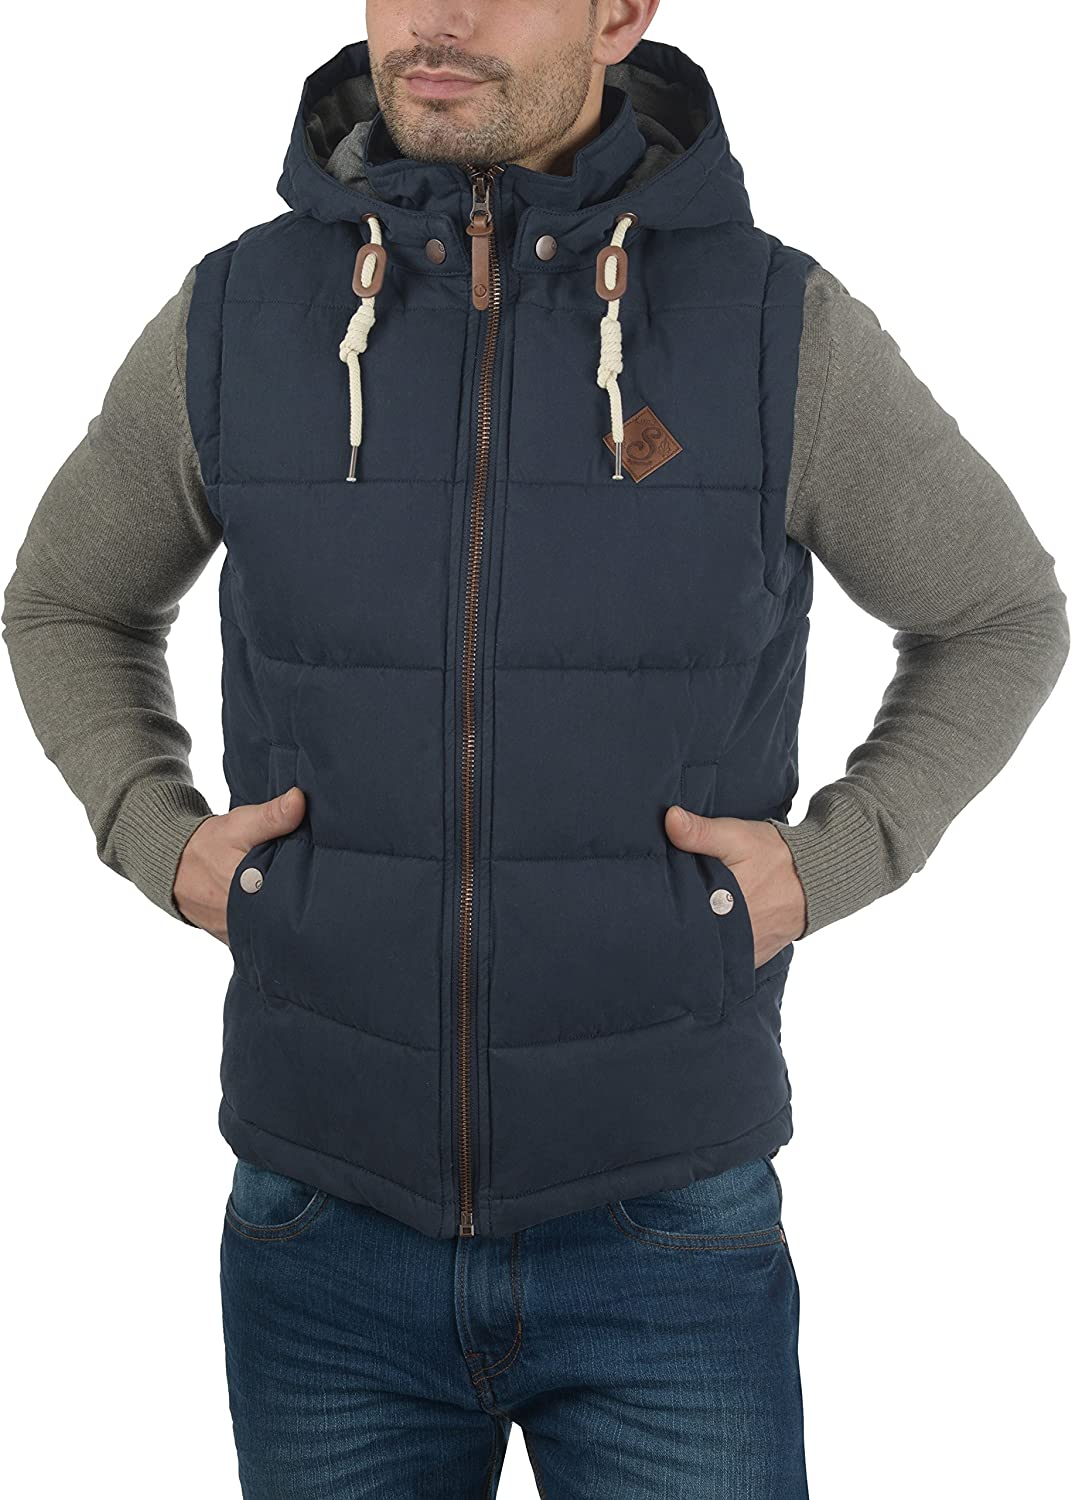 Solid Dry Men's Quilted Gilet Vest Body Warmer With Hood Insignia Blue